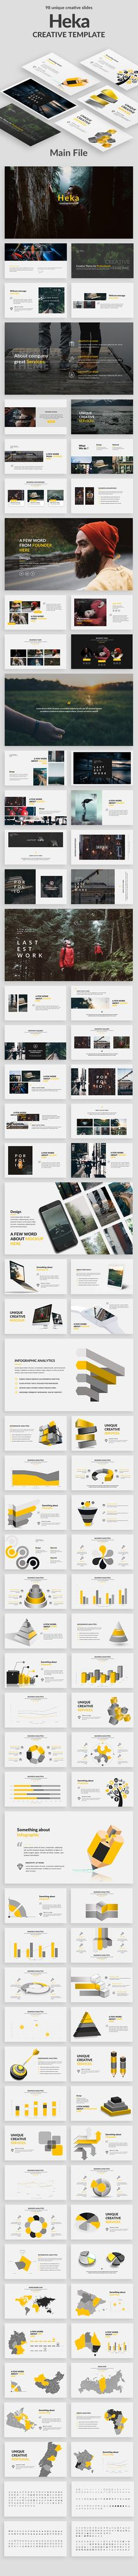 Heka Creative Powerpoint Template - Creative #PowerPoint Templates Download here: https://graphicriver.net/item/heka-creative-powerpoint-template/20005441?ref=alena994